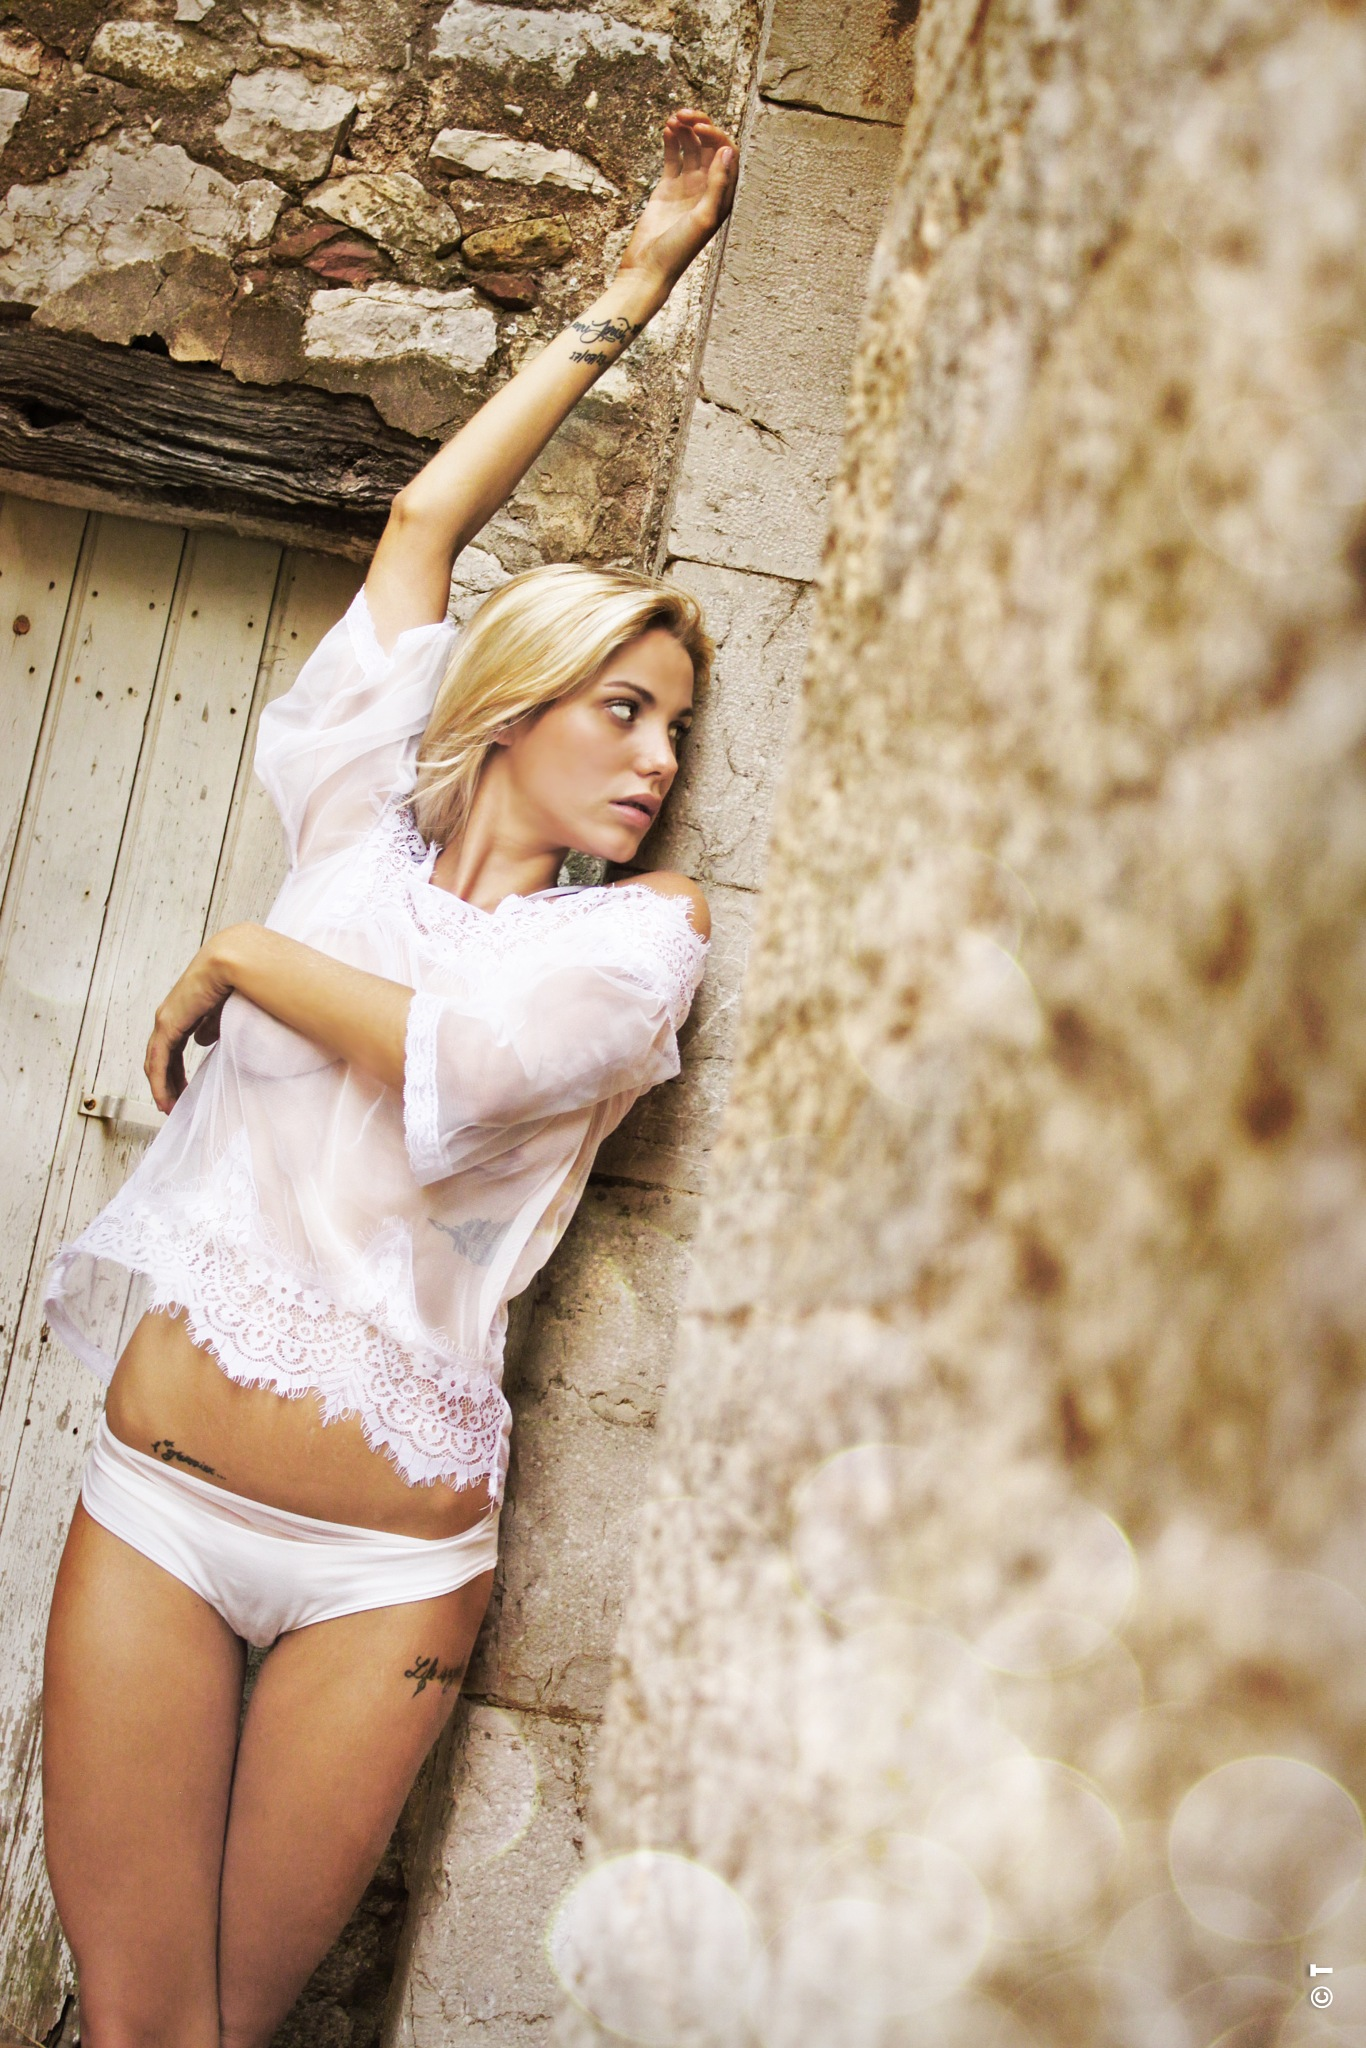 Old Town Lingerie by Tphotos